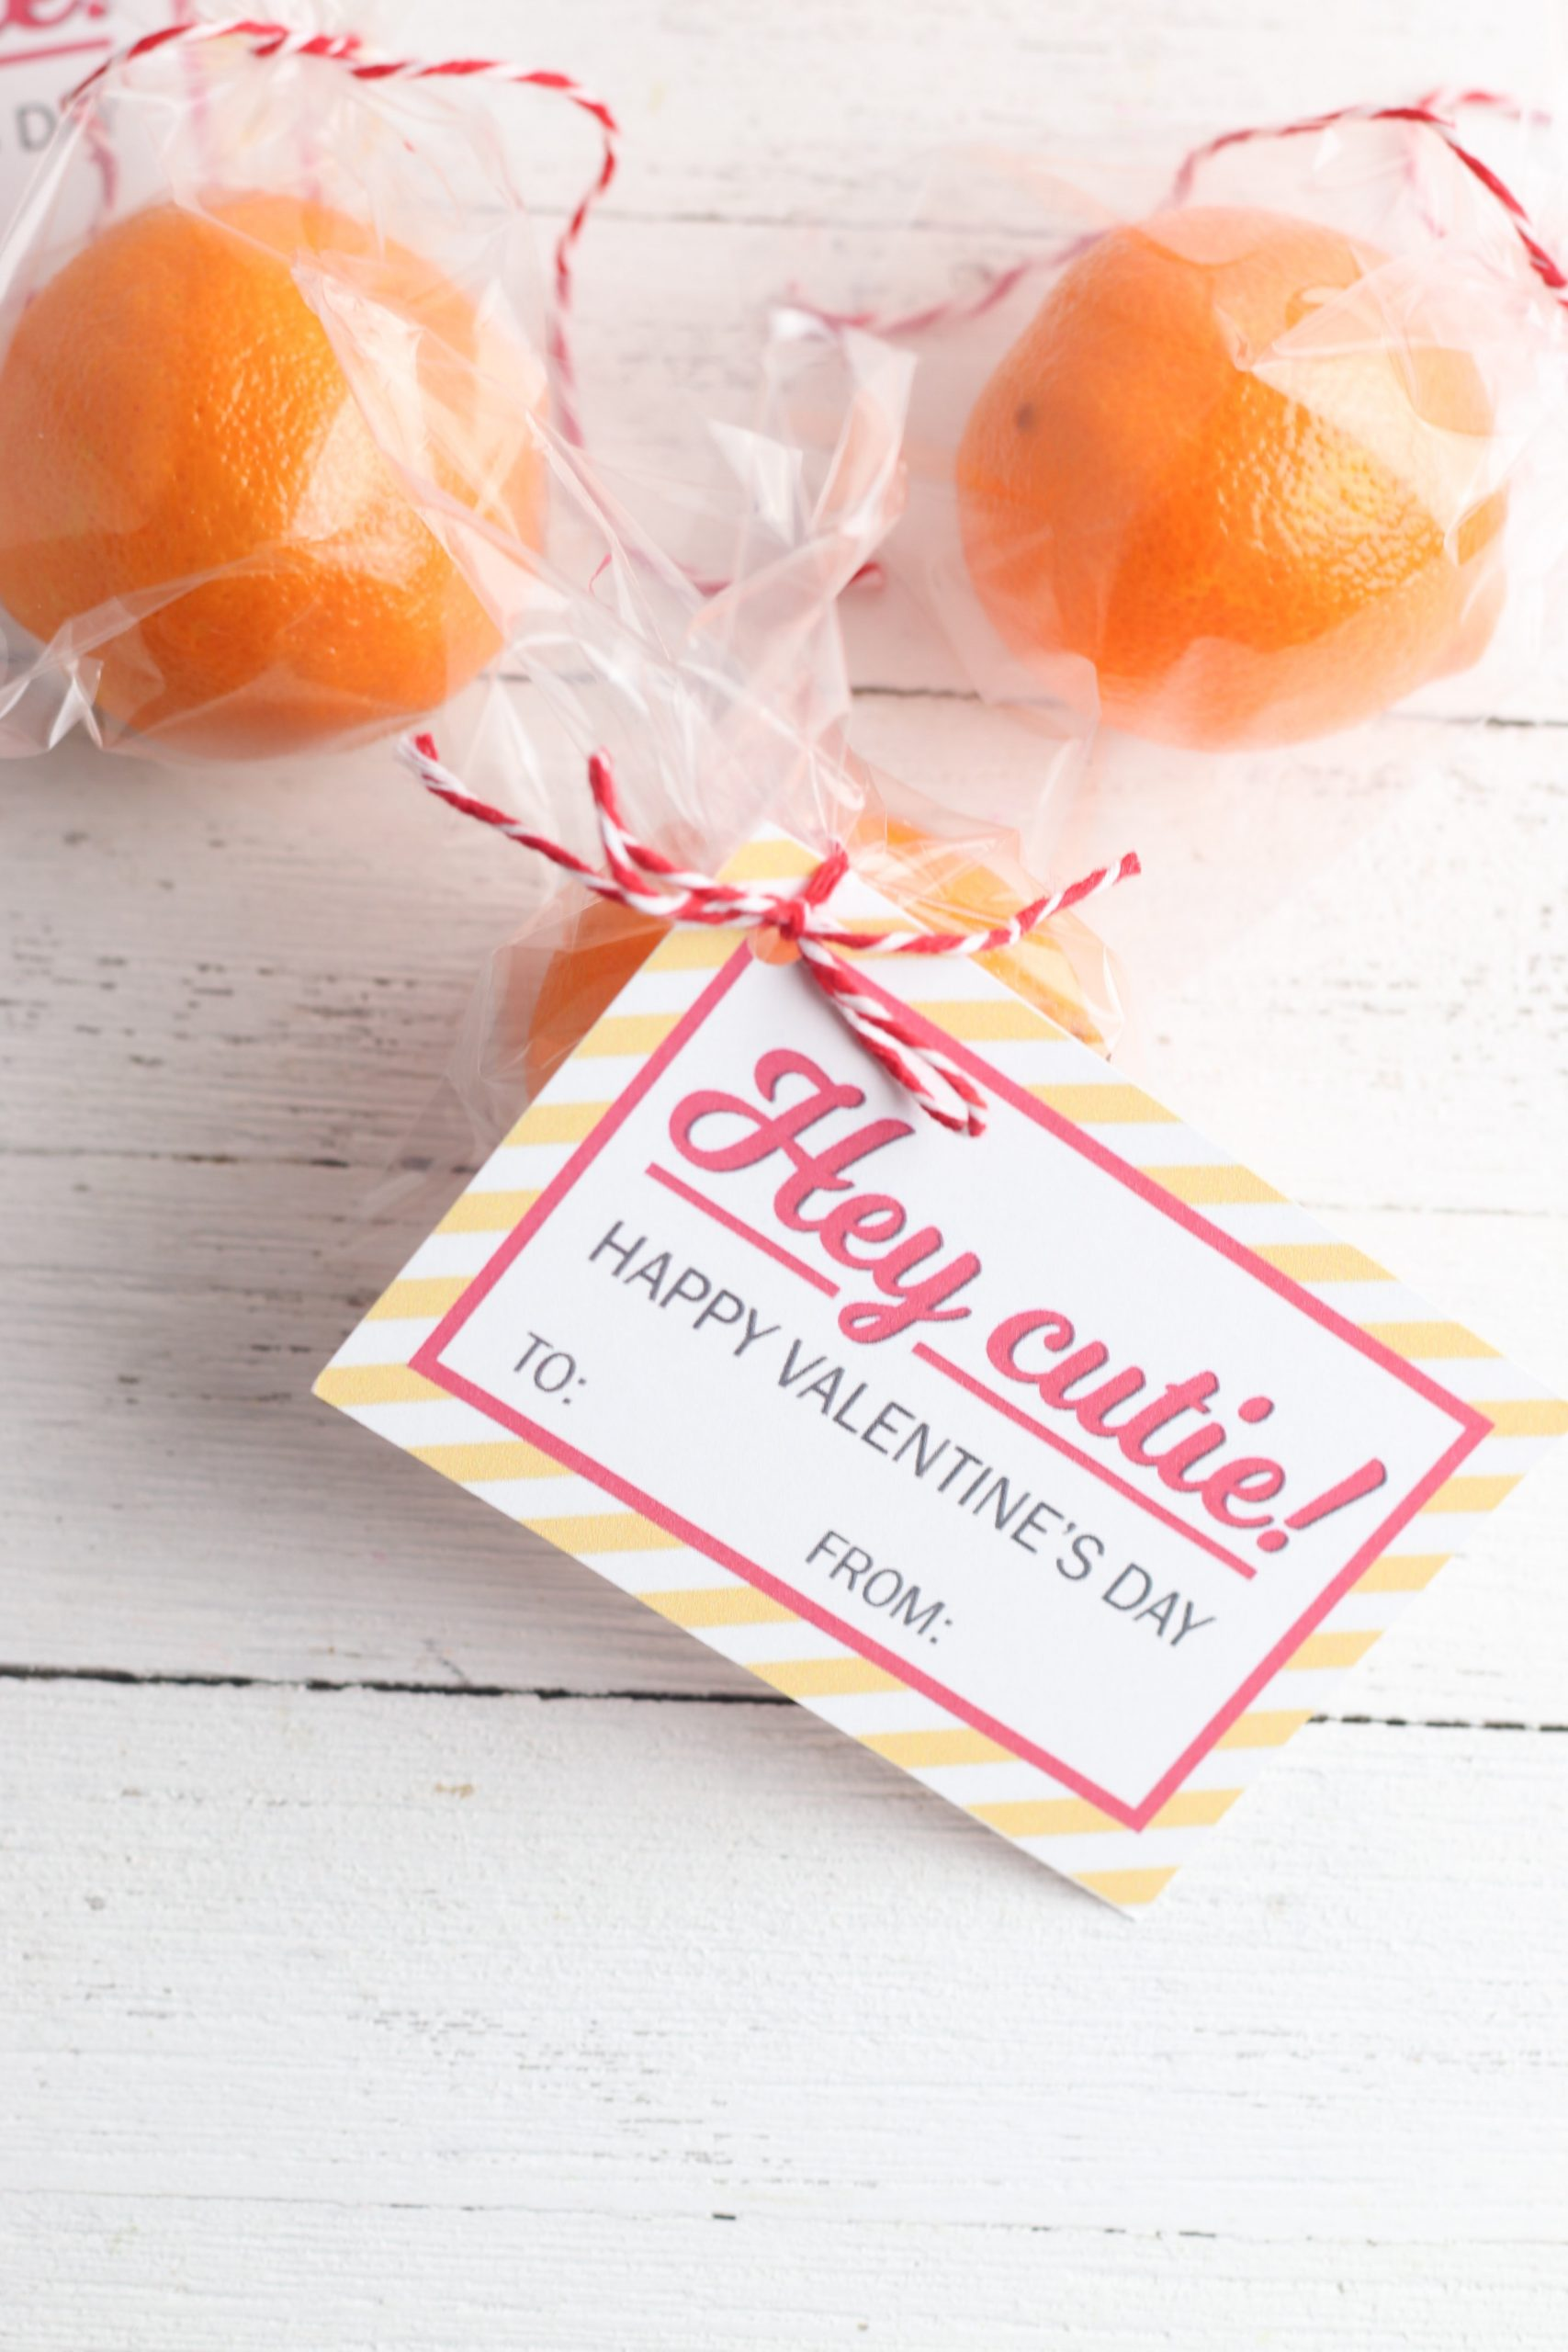 Cutie Valentine's for a candy free holiday!